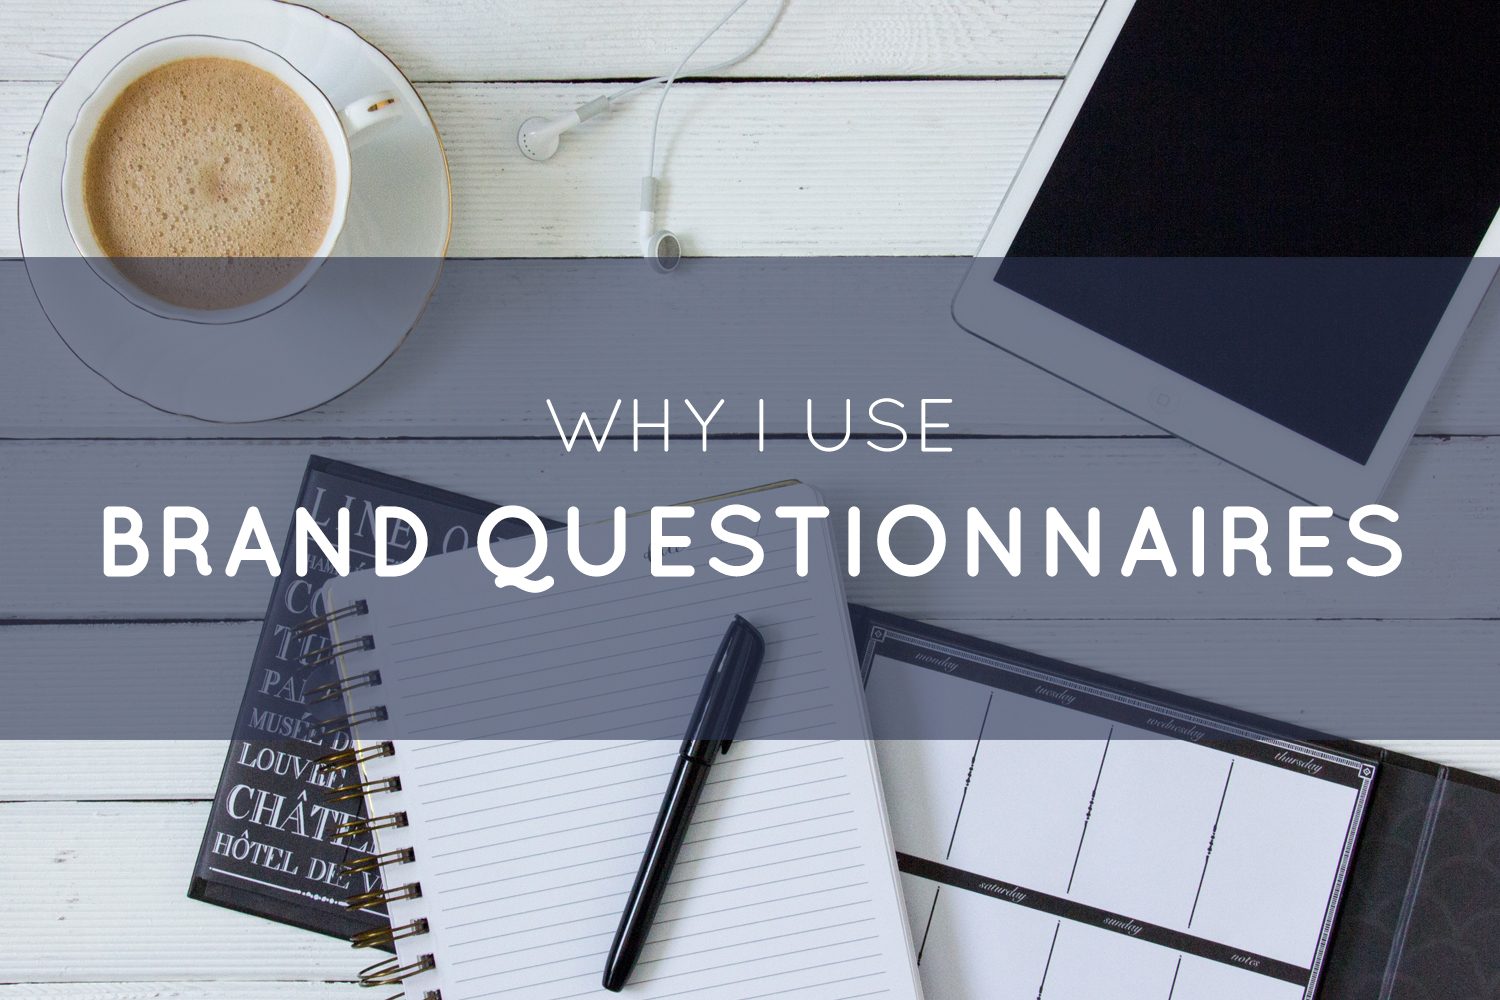 Why I Use Brand Questionnaires